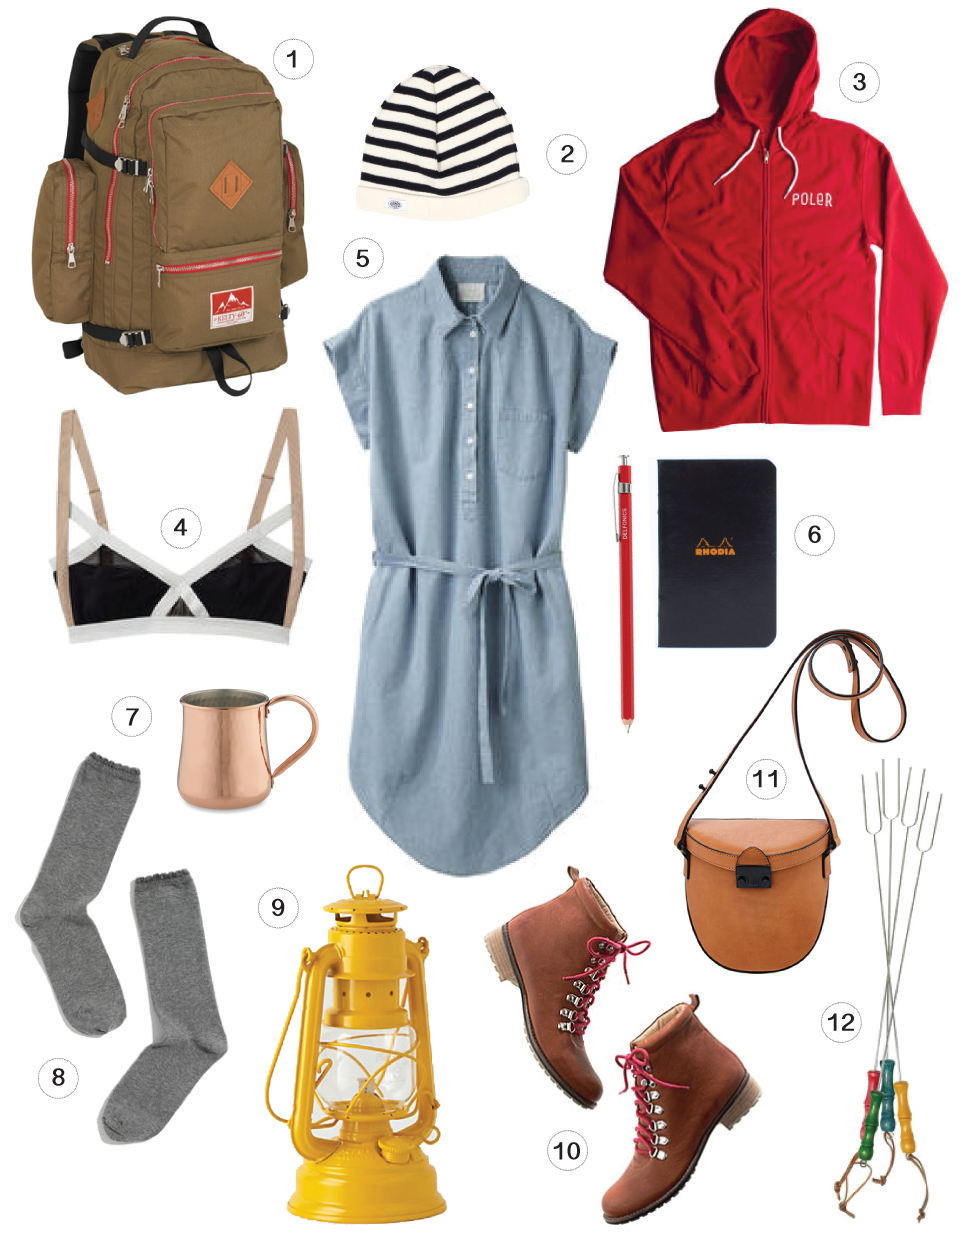 1 /  Wing Pack, Kelty, 2 / Armor Lux Striped Watch Cap, Dry Goods, 3 / Womens Venn Diagram Hoodie, Poler, 4 / La Garconne Bra, Polyvore, 5 / Chambray Shirtdress by Boy By Band Of Outsiders, Polyvore, 6 / Defonics Pencil, Jcrew - Rhodia Notebook, Needsupply, 7 / Cooper Mug, Williams Sonoma, 8 / Lisa B. Scallop Edge Trouser Socks, Madewell, 9 / Yellow Railroad Lantern, Tydepool, 10 / Artika Boots by Matt Bernson, Polyvore, 11 / Shooter Bag, Loeffler Randall, 12 / Marshmallow Roasting Set, Target.